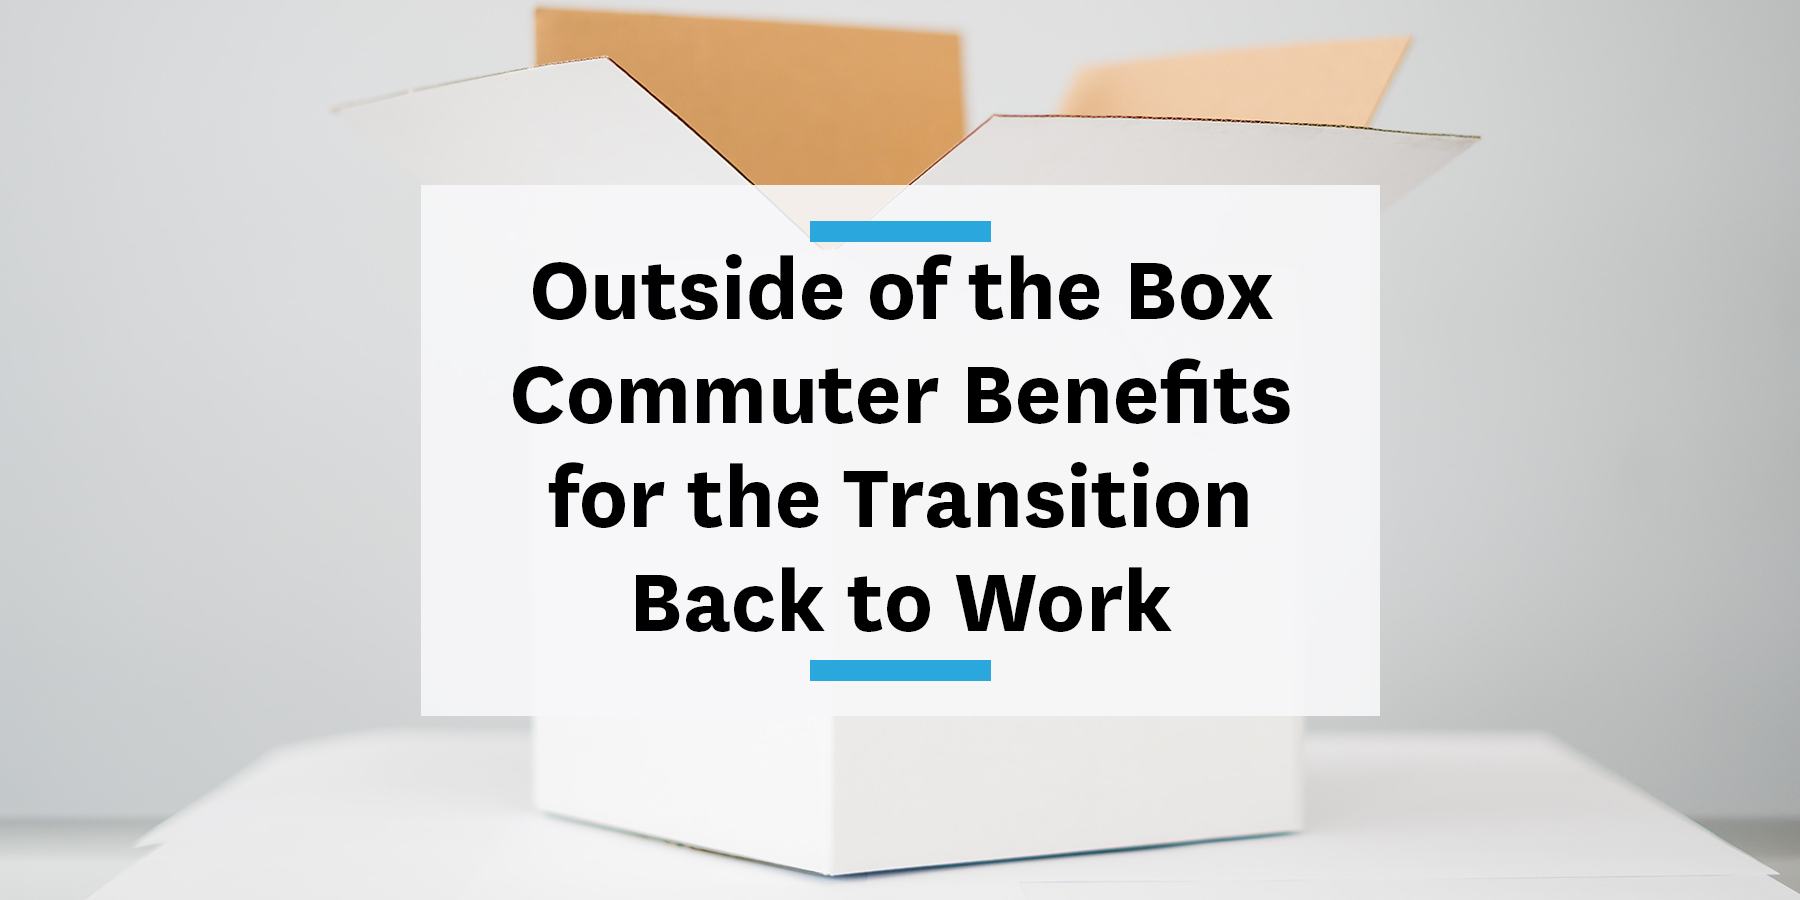 Feature image for outside-of-the-box commuter benefits for the return to the office